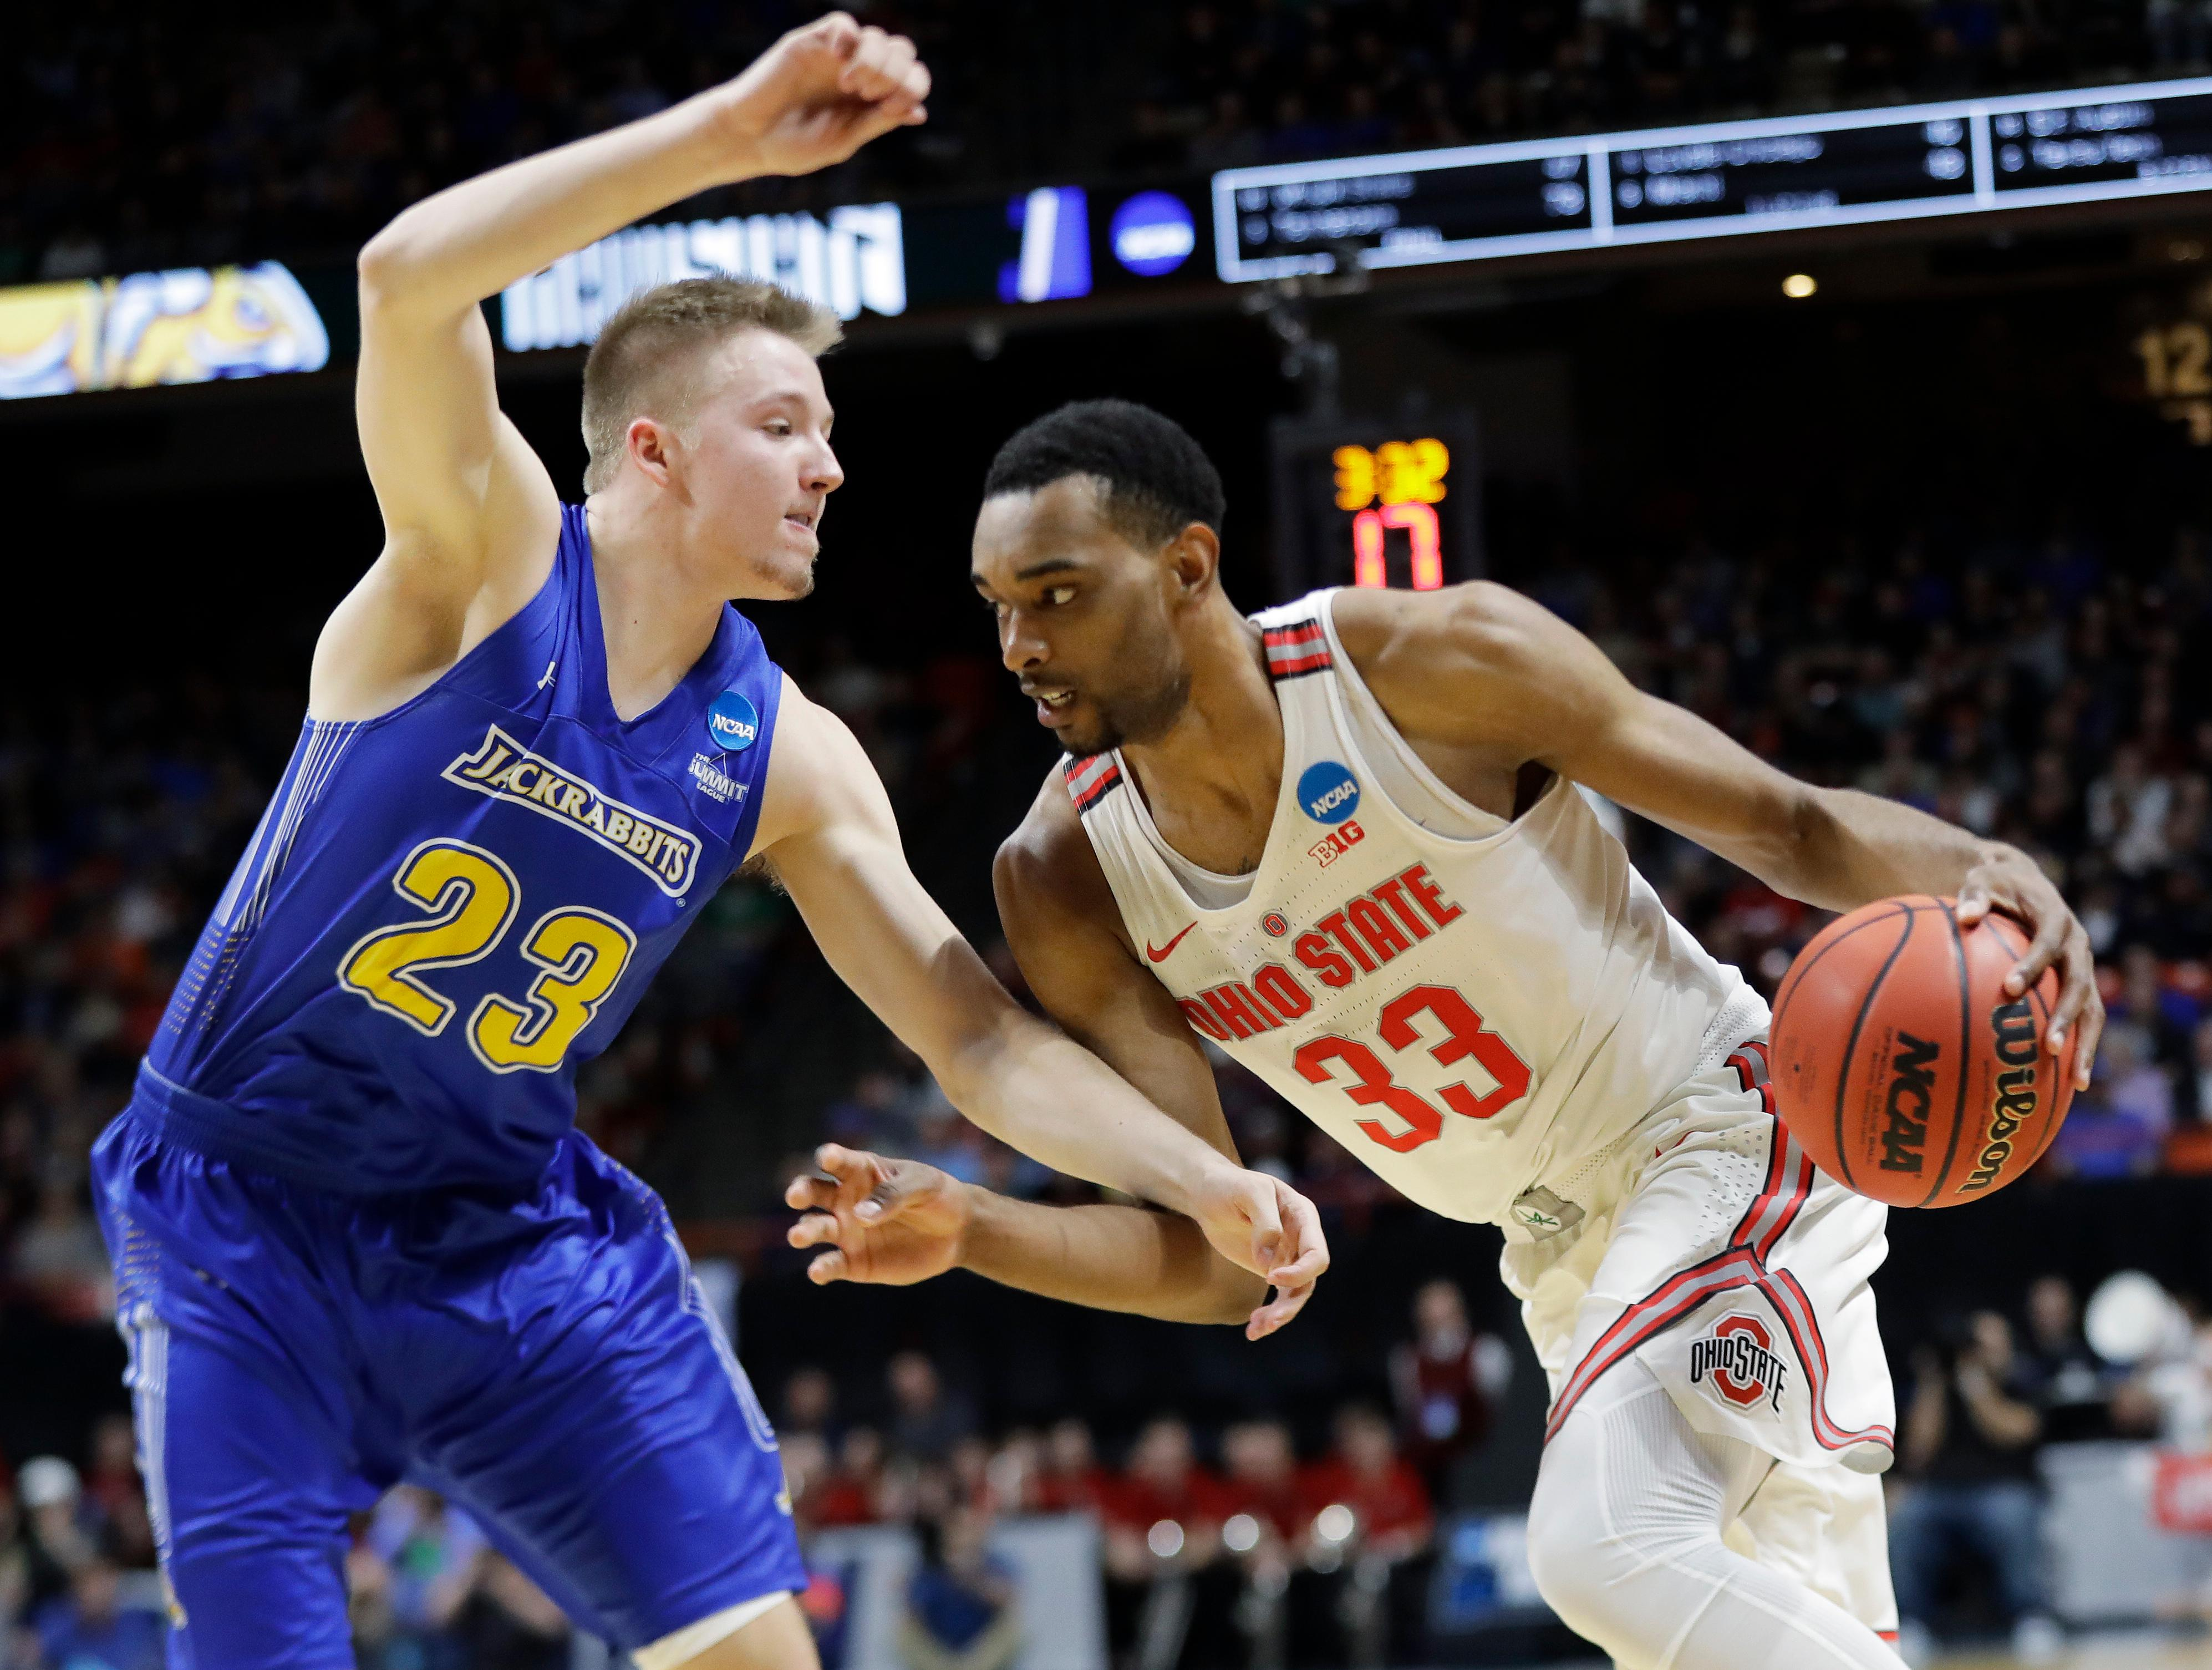 Ohio State forward Keita Bates-Diop (33) drives against South Dakota State guard Reed Tellinghuisen (23) during the first half of a first-round game in the NCAA college basketball tournament, Thursday, March 15, 2018, in Boise, Idaho. (AP Photo/Otto Kitsinger)